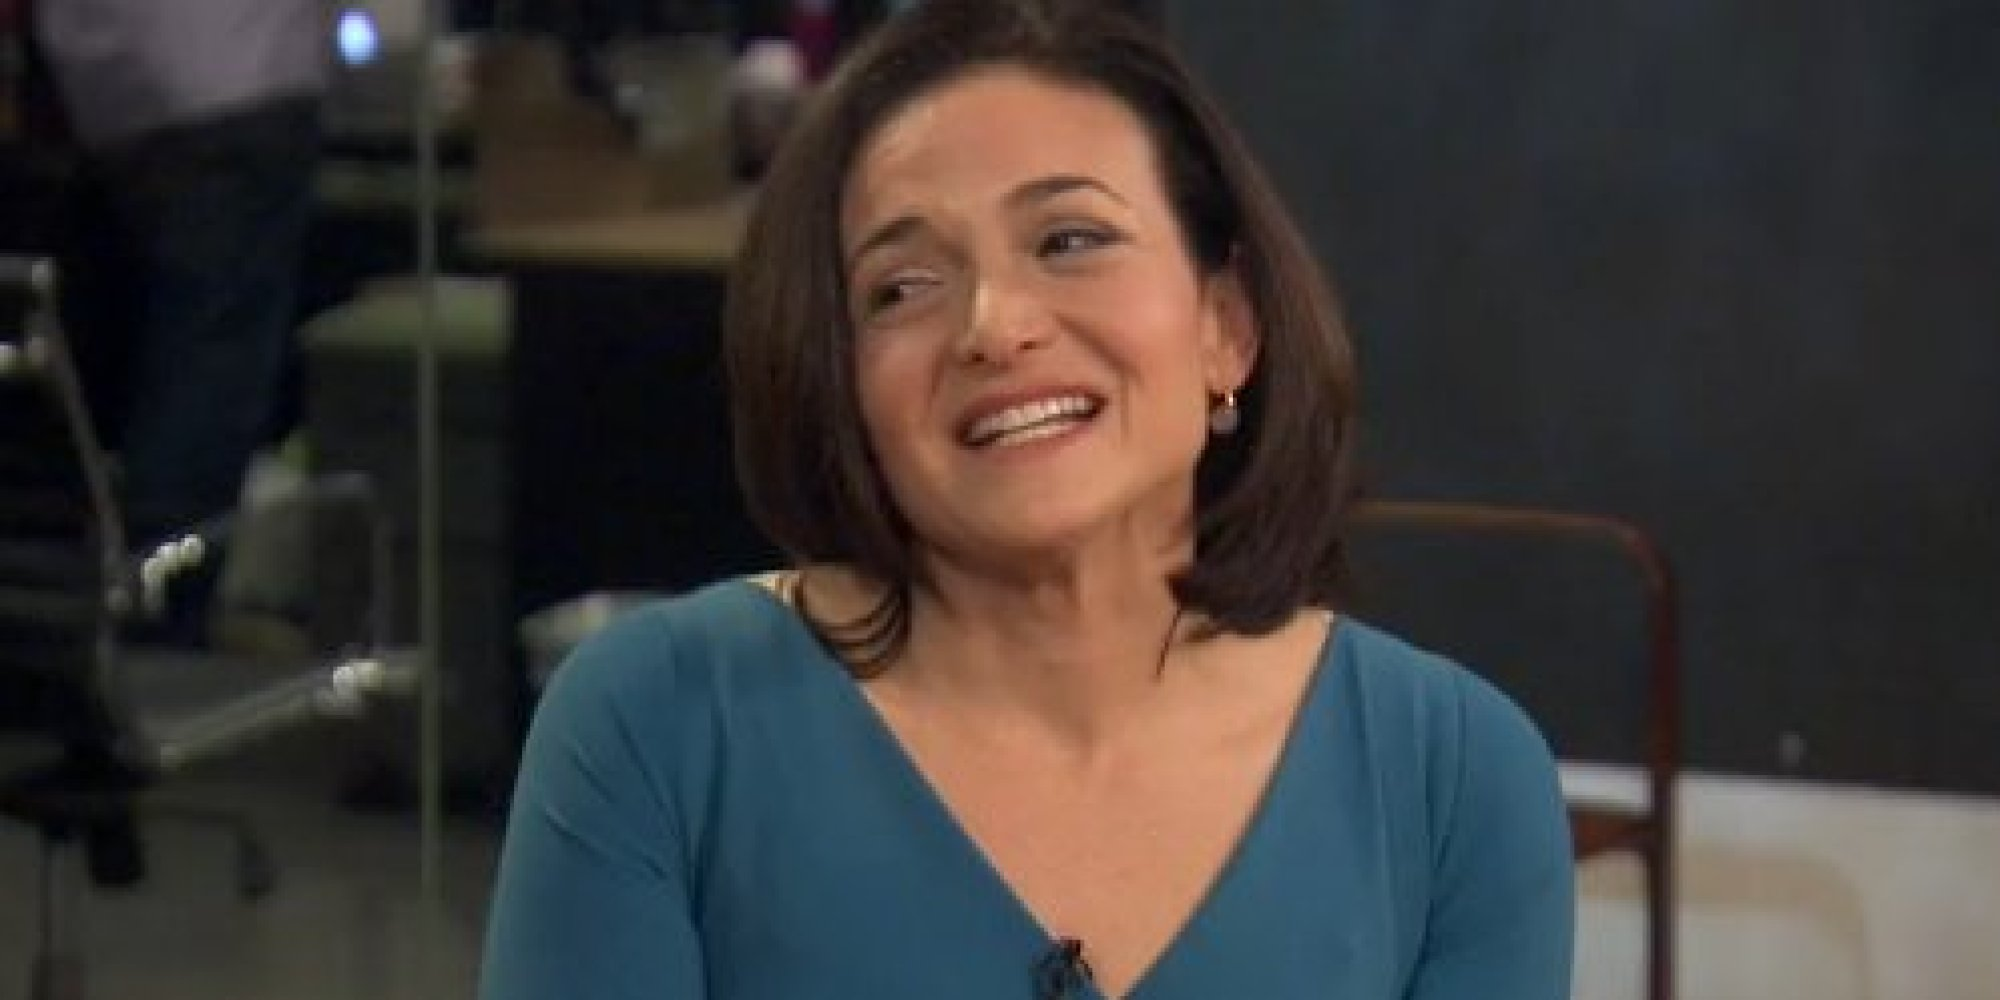 Sheryl Sandberg: 'I Don't Want To Run For Office' | HuffPost